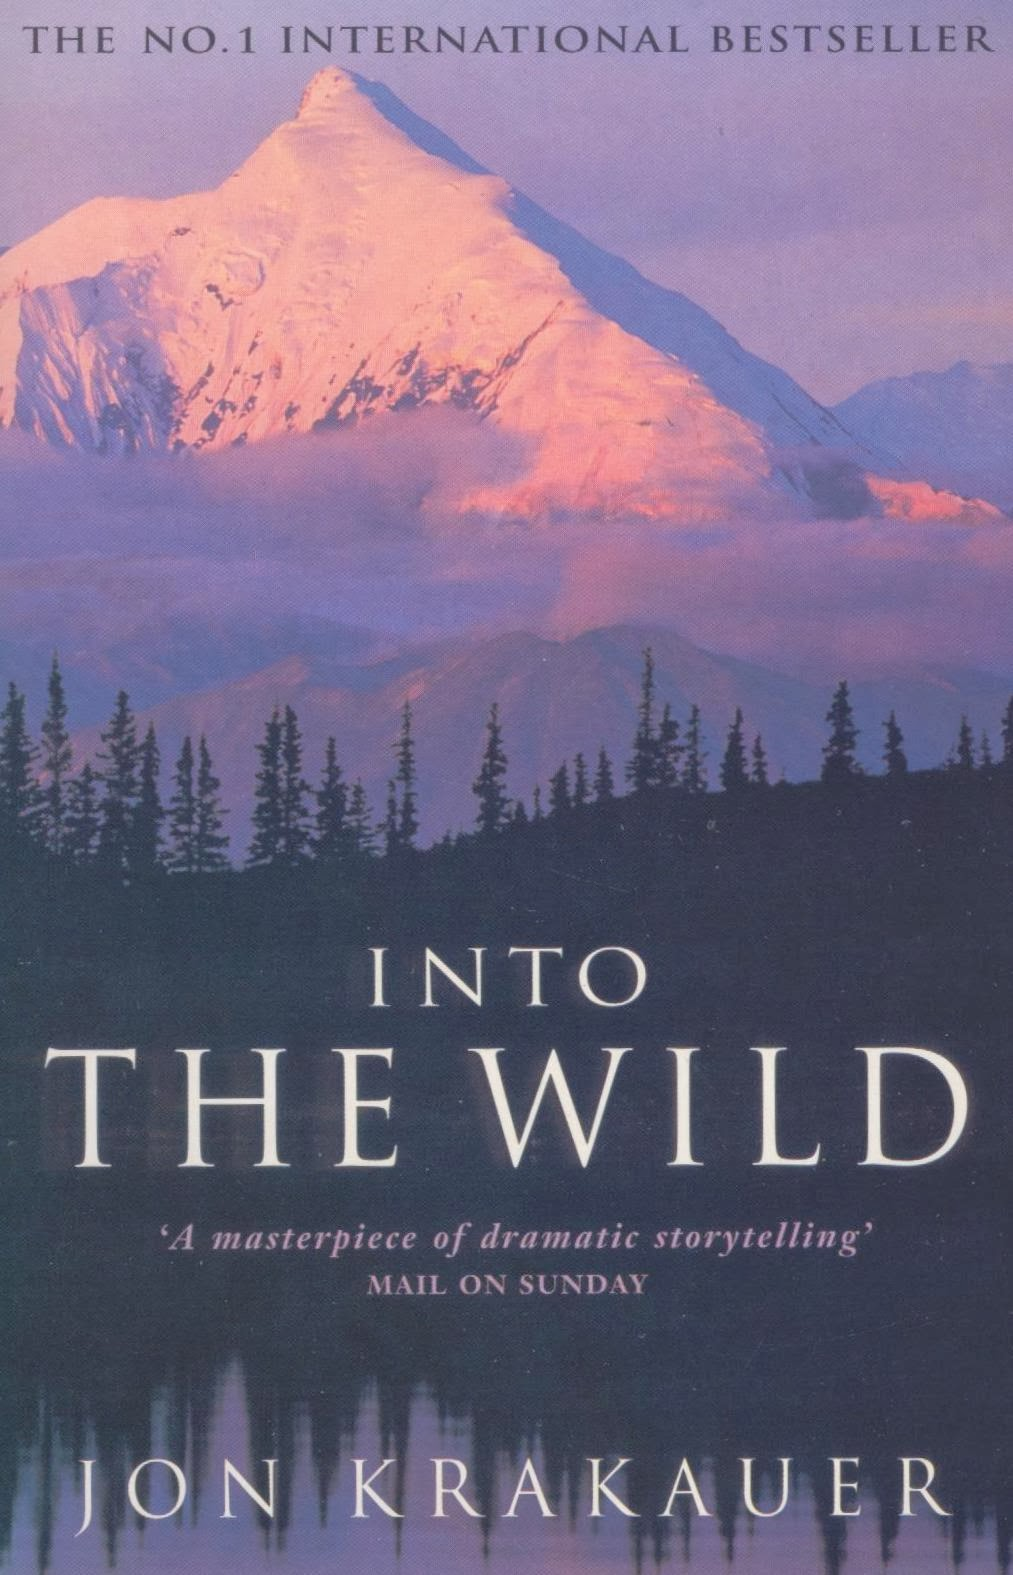 an analysis of into the wild a book by jon krakauer Jon krakauer's use of ethos, logos and pathos when writting into the wild into the wild by john krakauer is a rare book in which its author freely admits his bias within the first few pages.